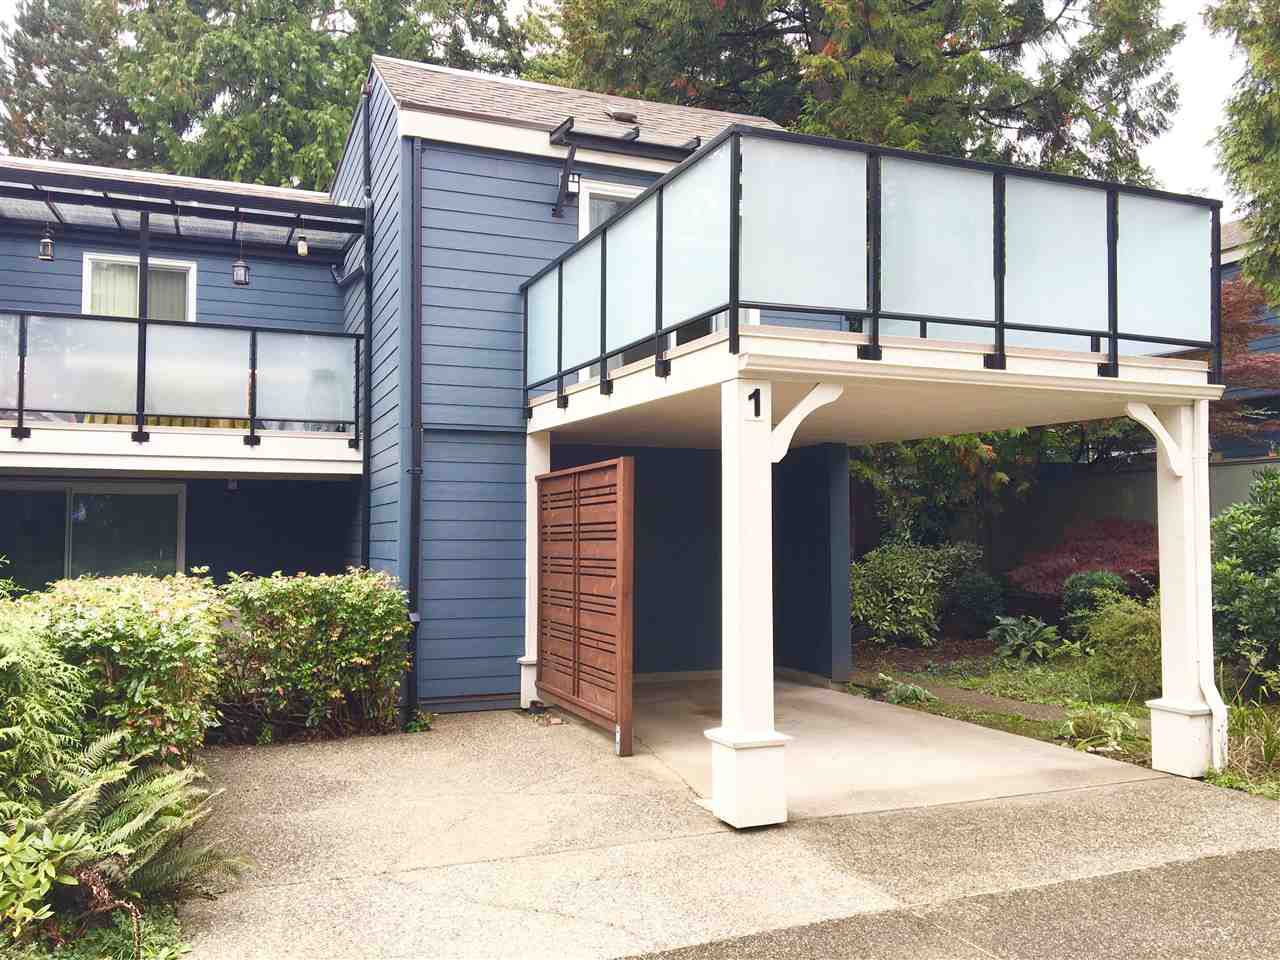 """Main Photo: 1 2590 AUSTIN Avenue in Coquitlam: Coquitlam East Townhouse for sale in """"AUSTIN WOODS"""" : MLS®# R2113961"""